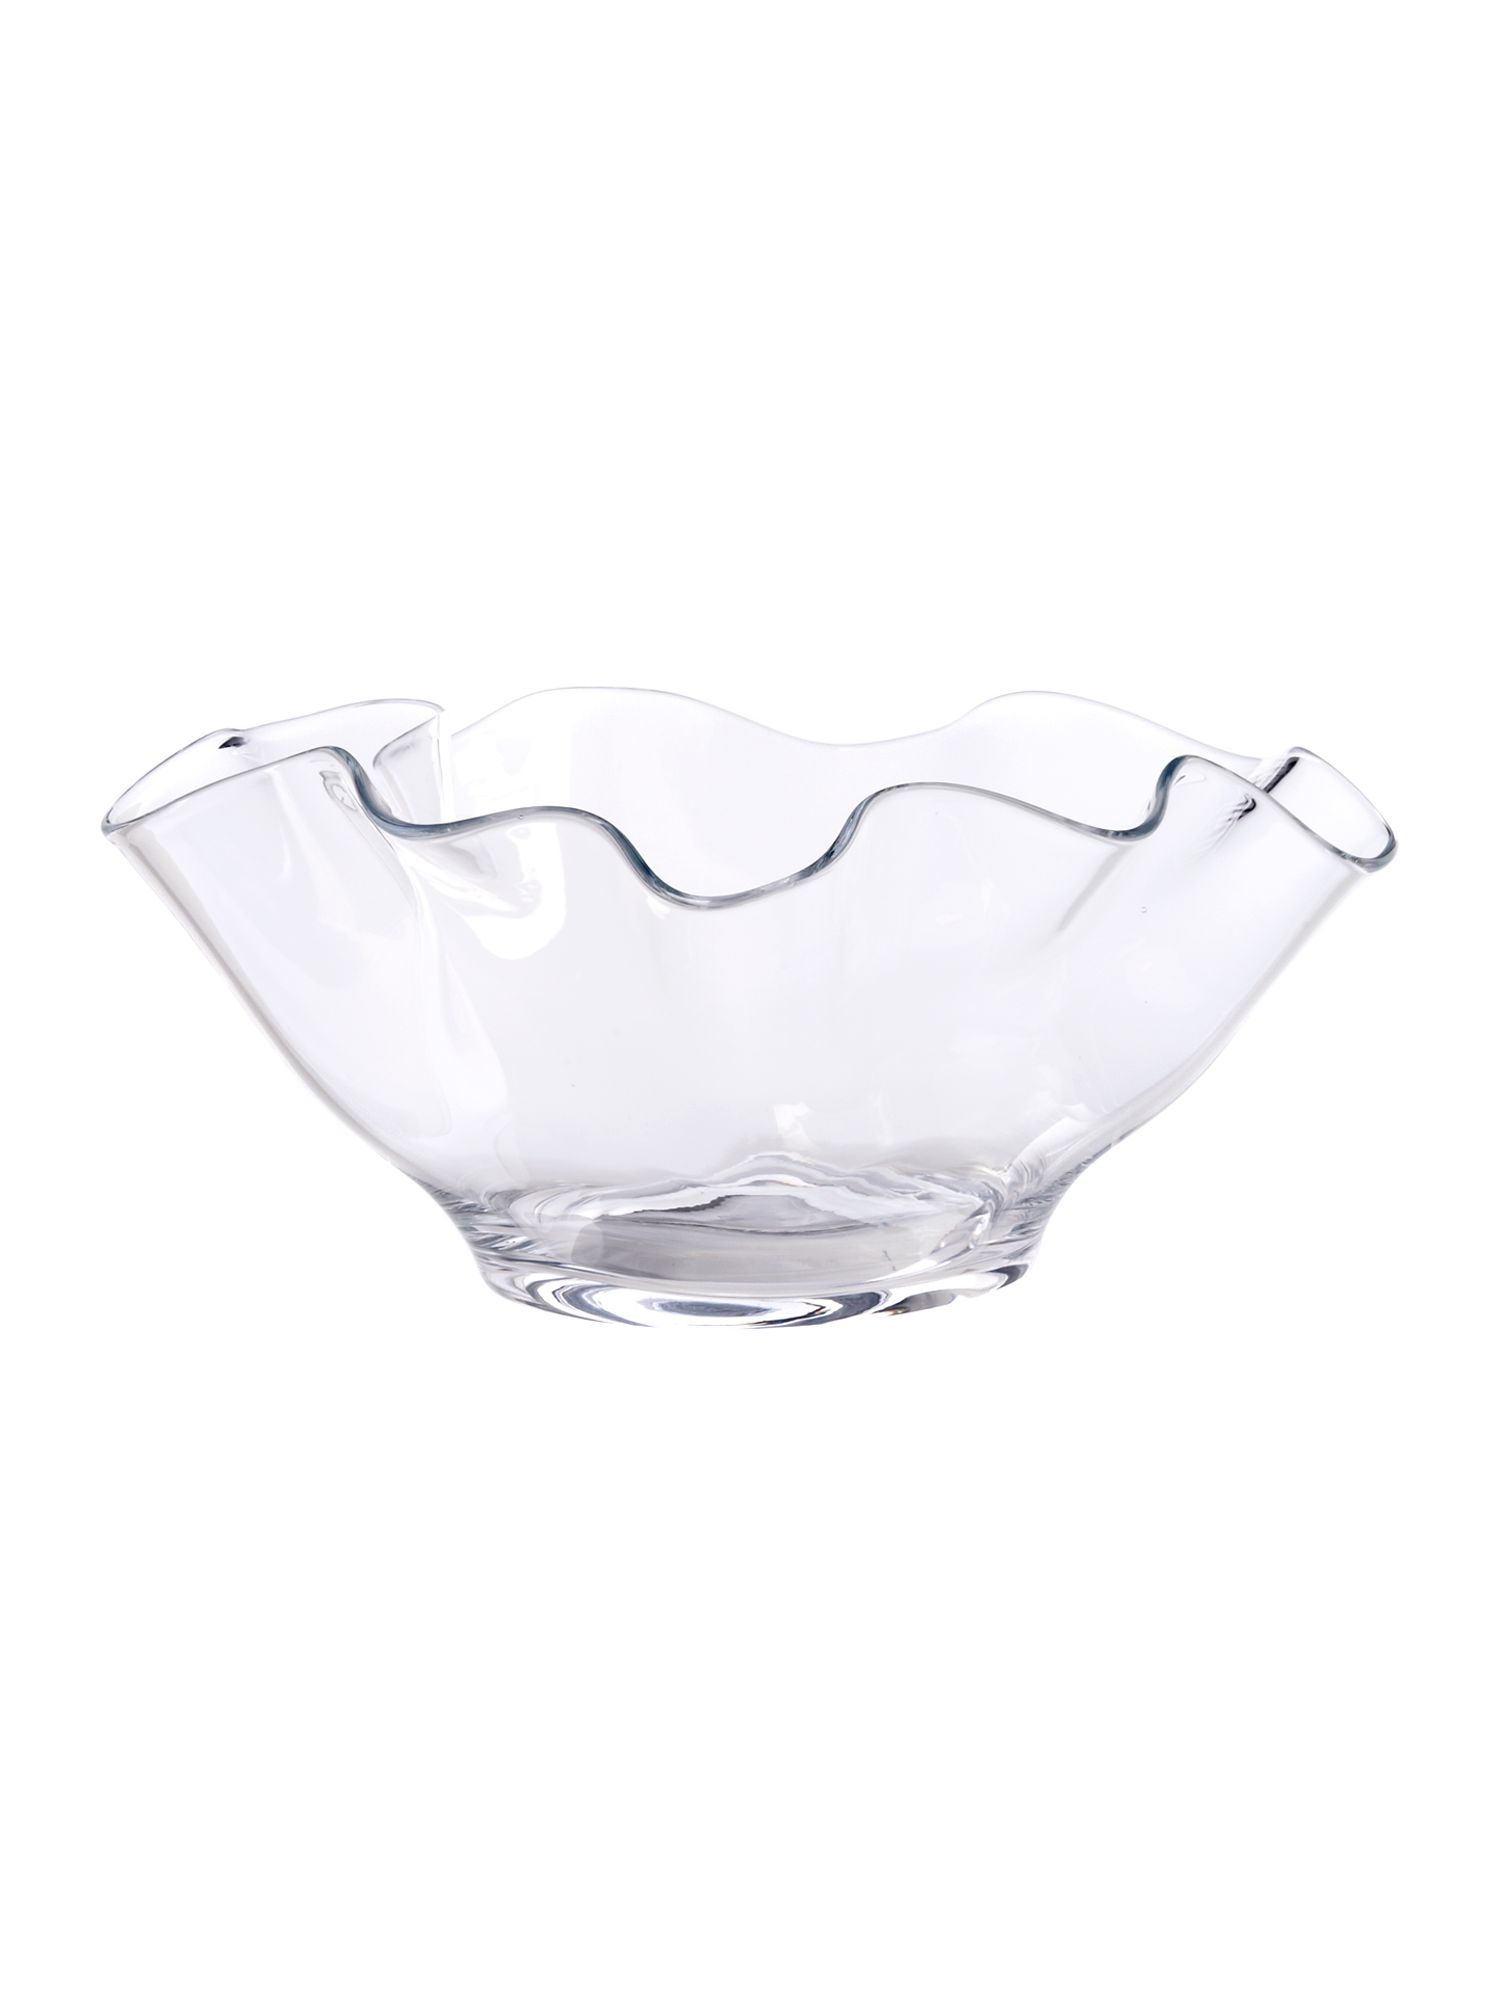 Handkerchief clear glass decorative bowl